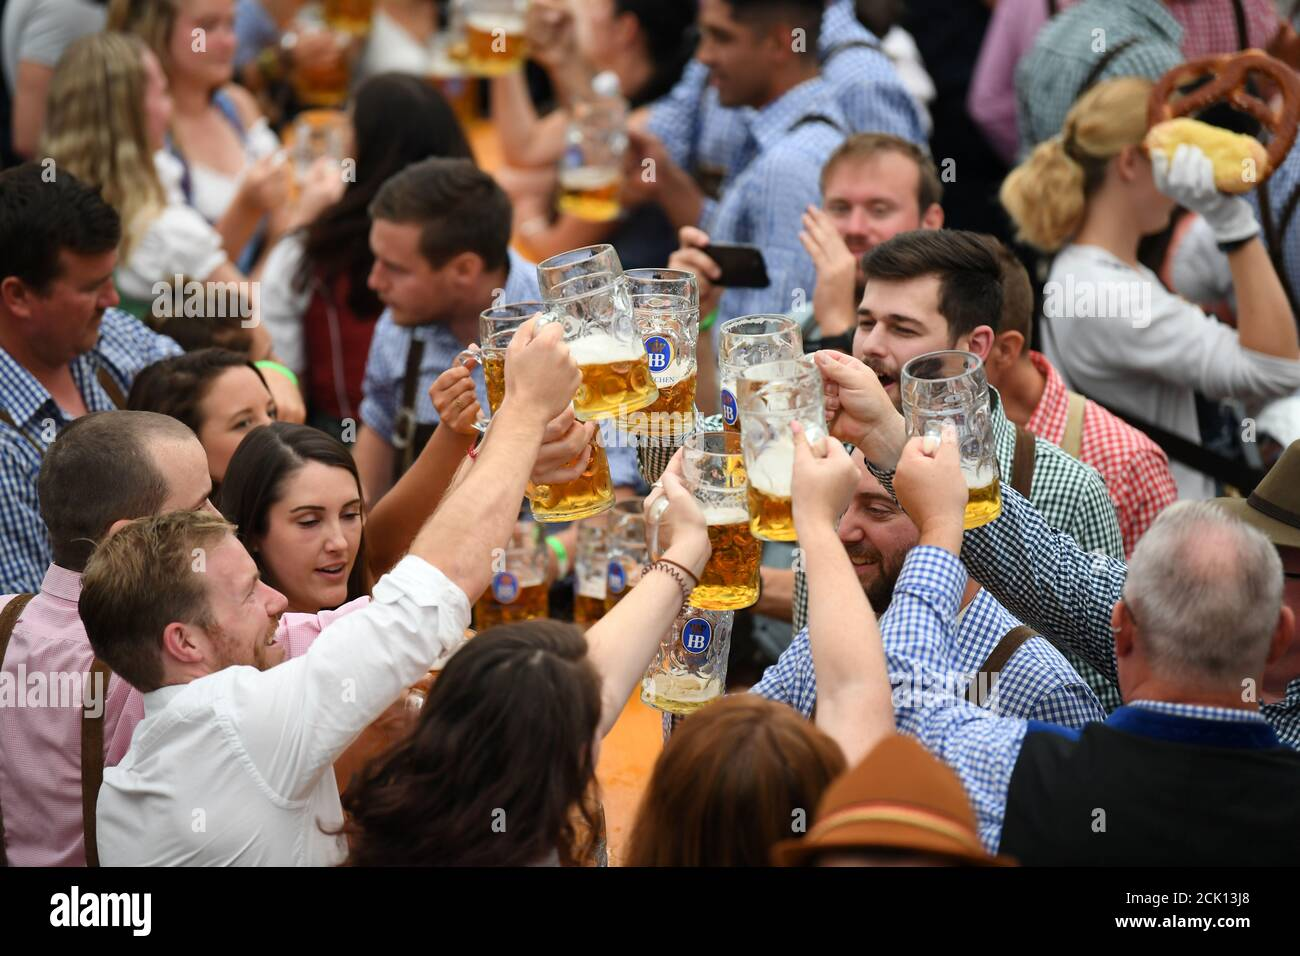 Visitors cheer with beers in a tent during Oktoberfest in Munich, Germany, September 22, 2019. REUTERS/Andreas Gebert Stock Photo